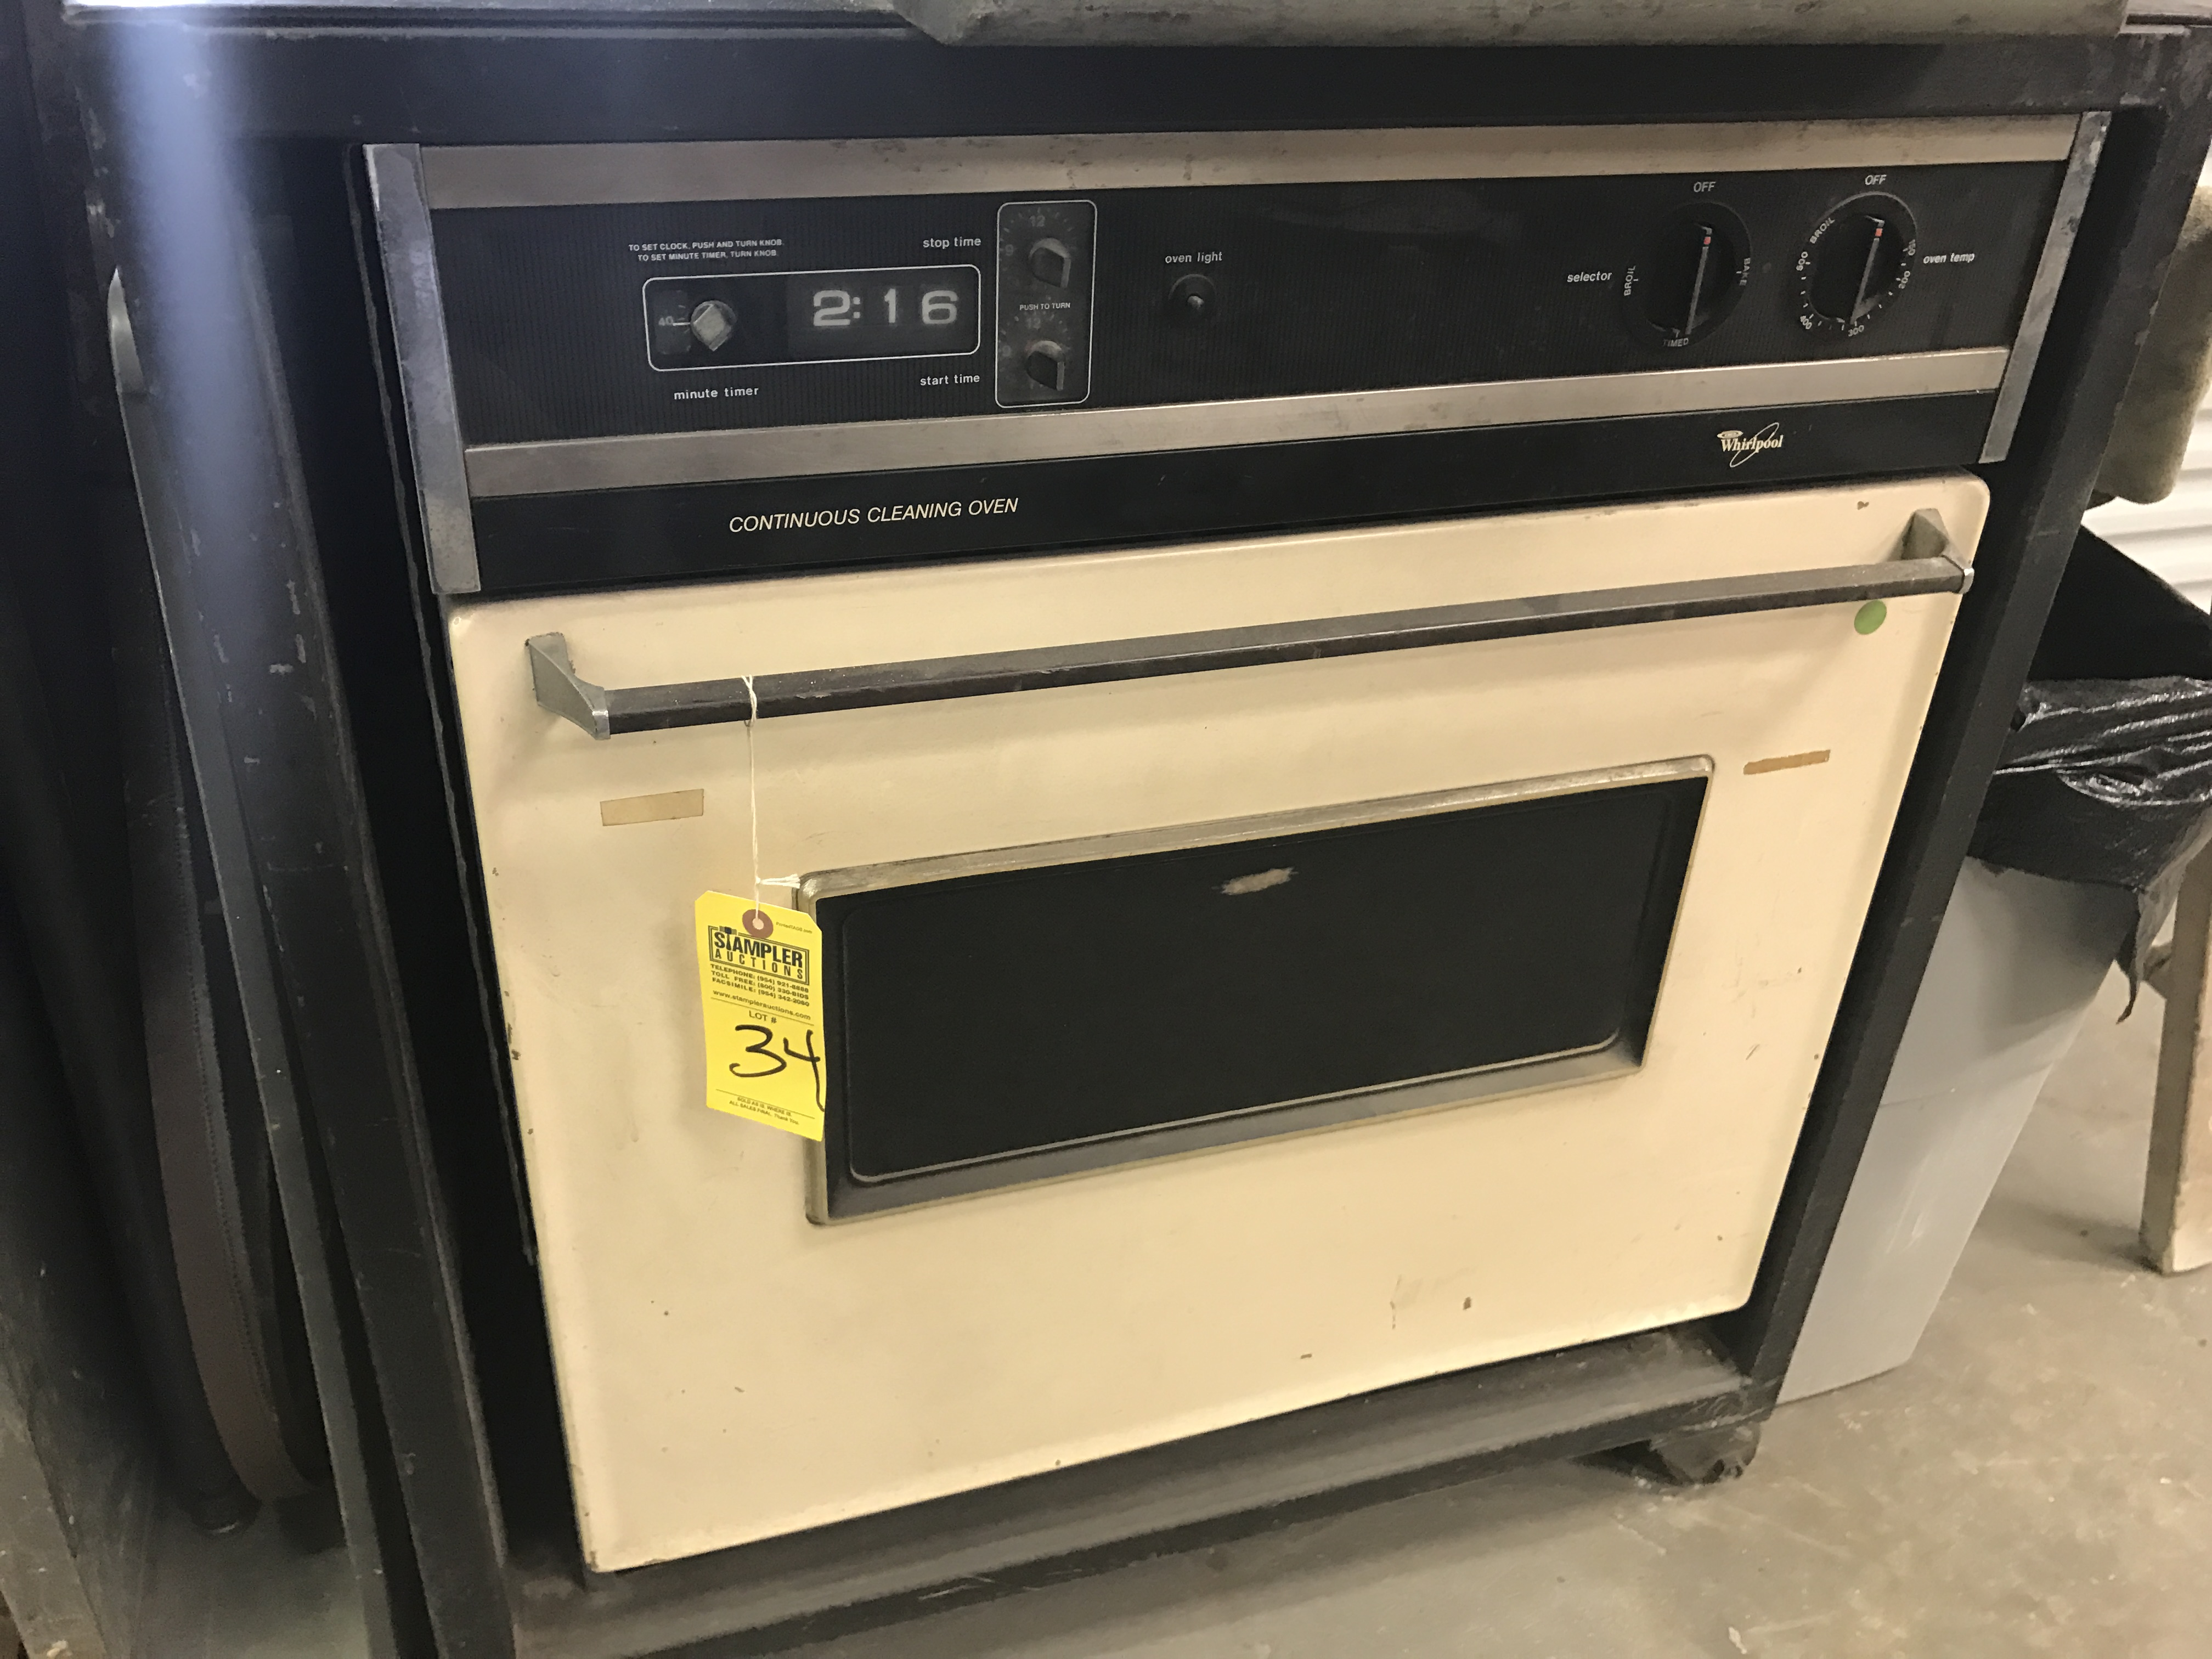 WHIRLPOOL CONTINUOUS CLEANING WALL OVEN